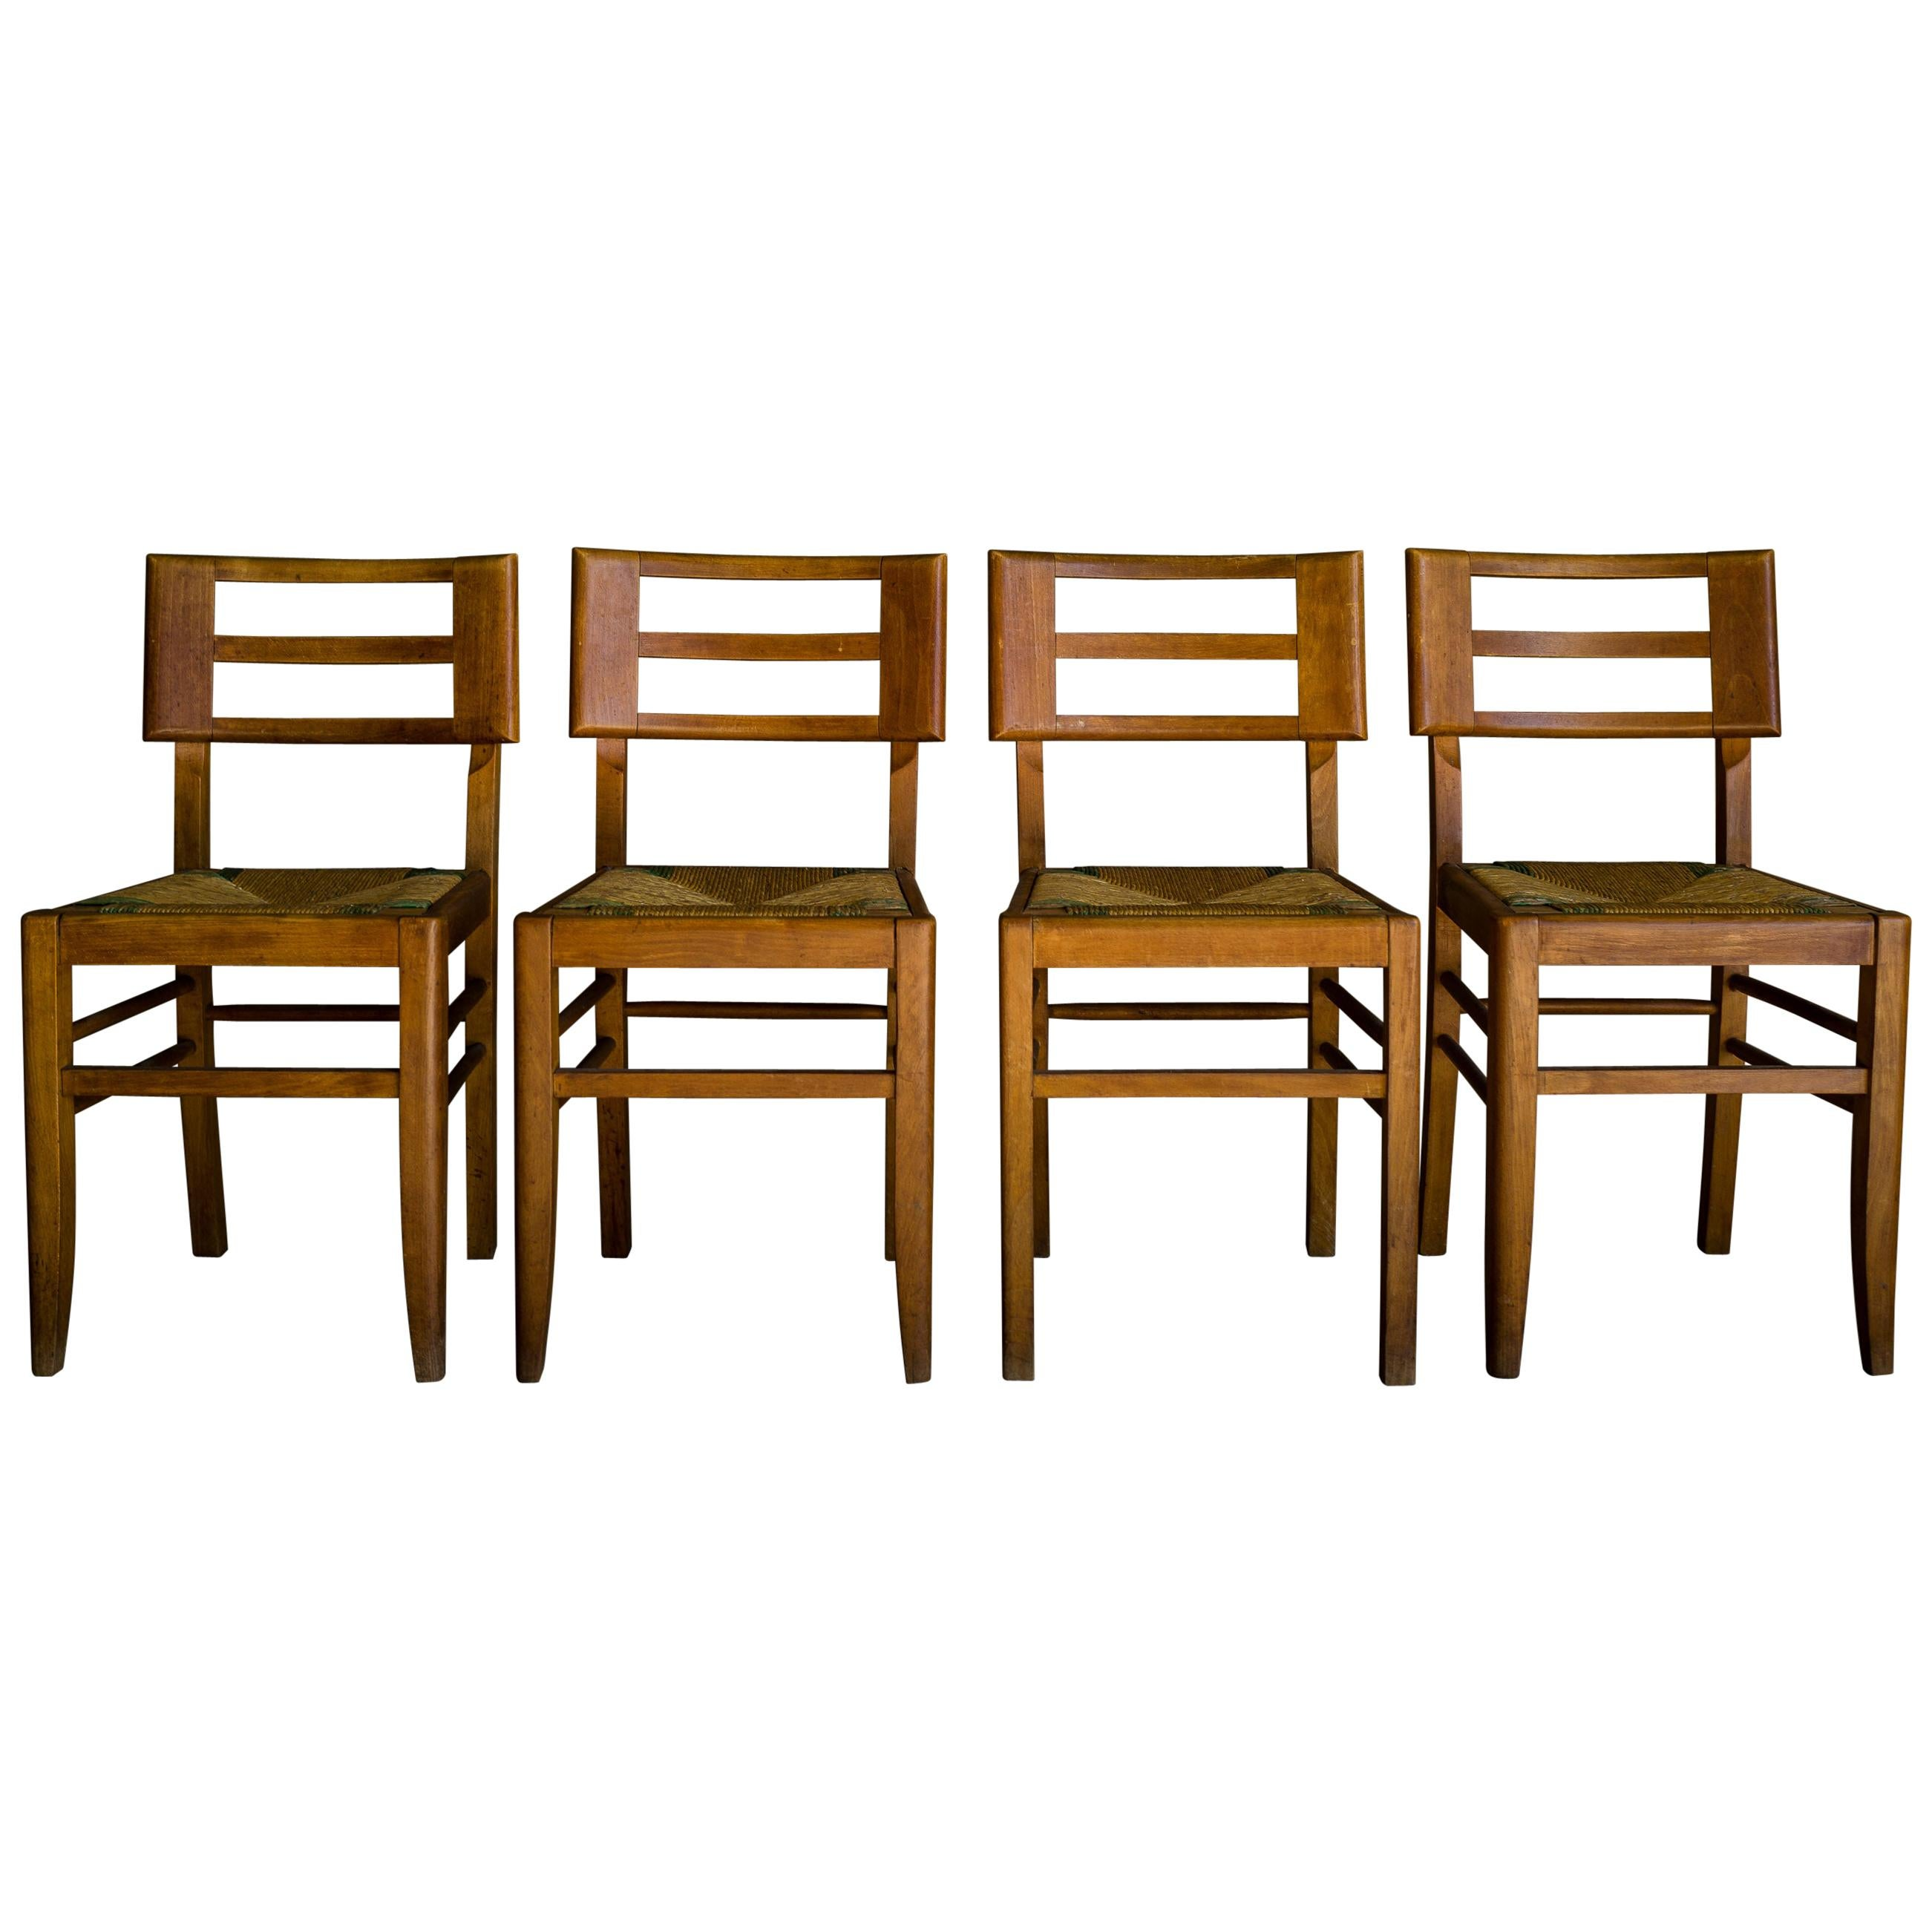 Set of Four Dining Chairs by Pierre Cruege, France, 1940s